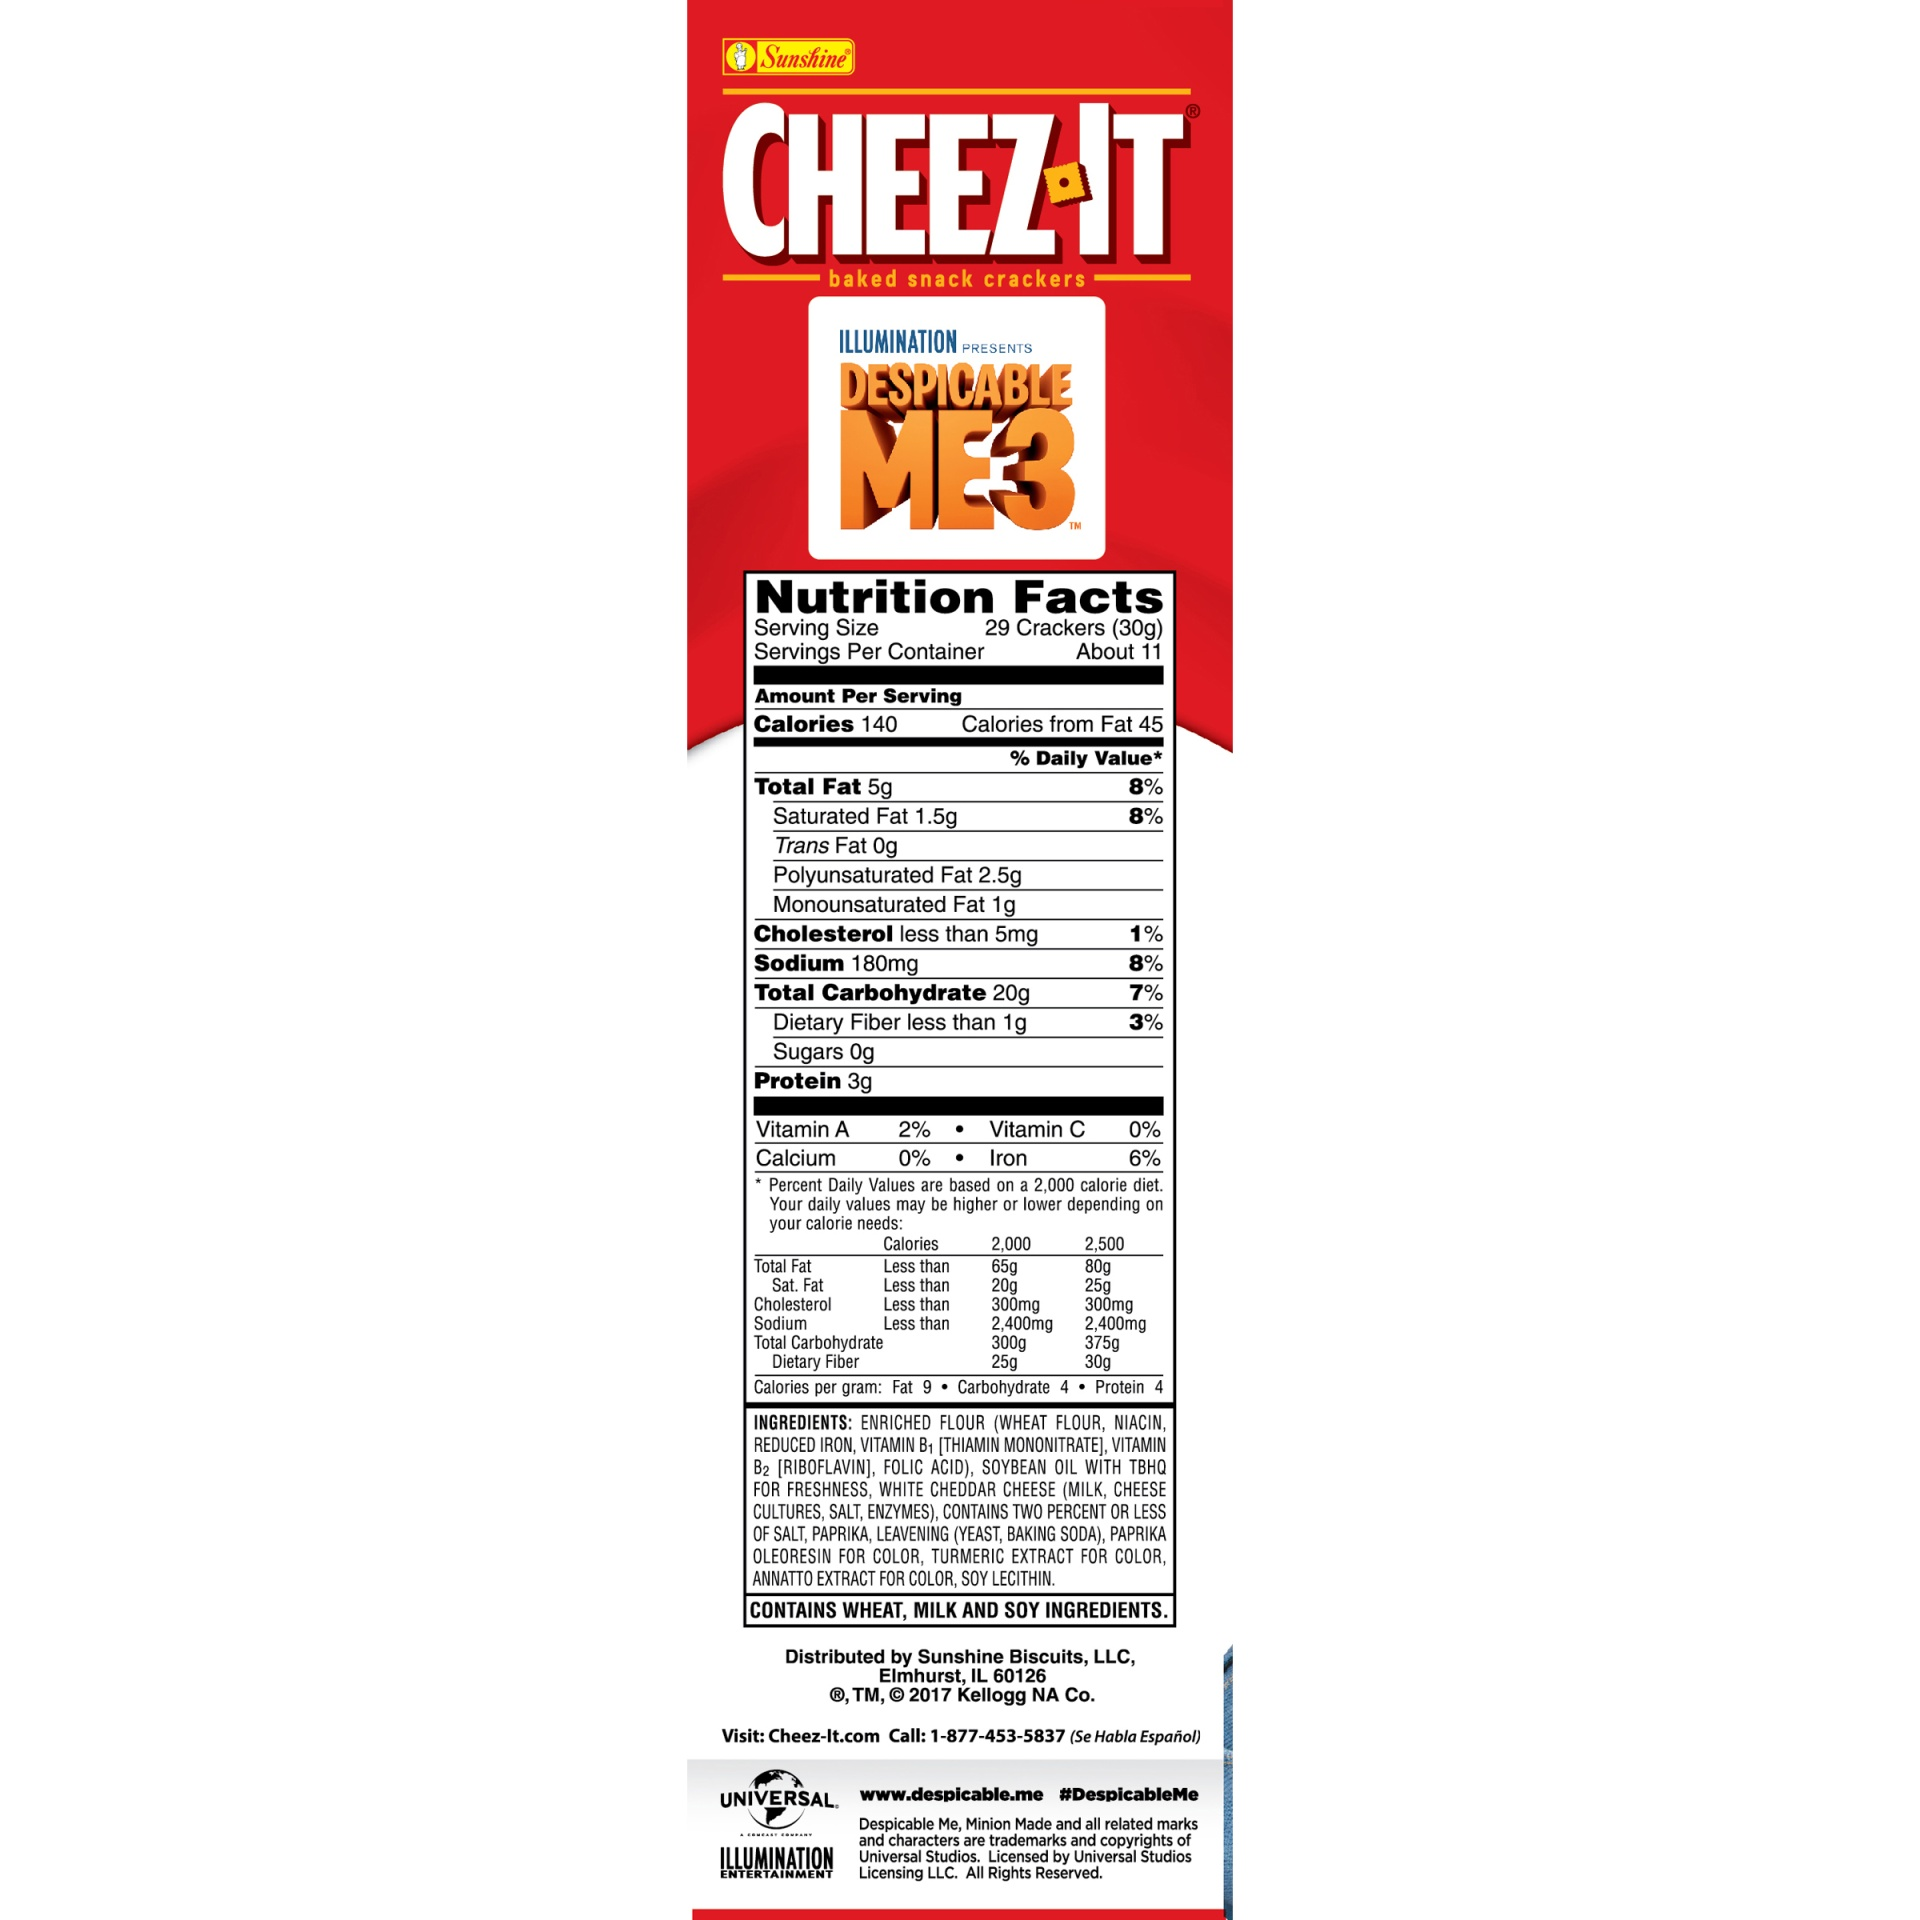 slide 5 of 8, Cheez-It Despicable Me 3 Baked Snack Crackers,